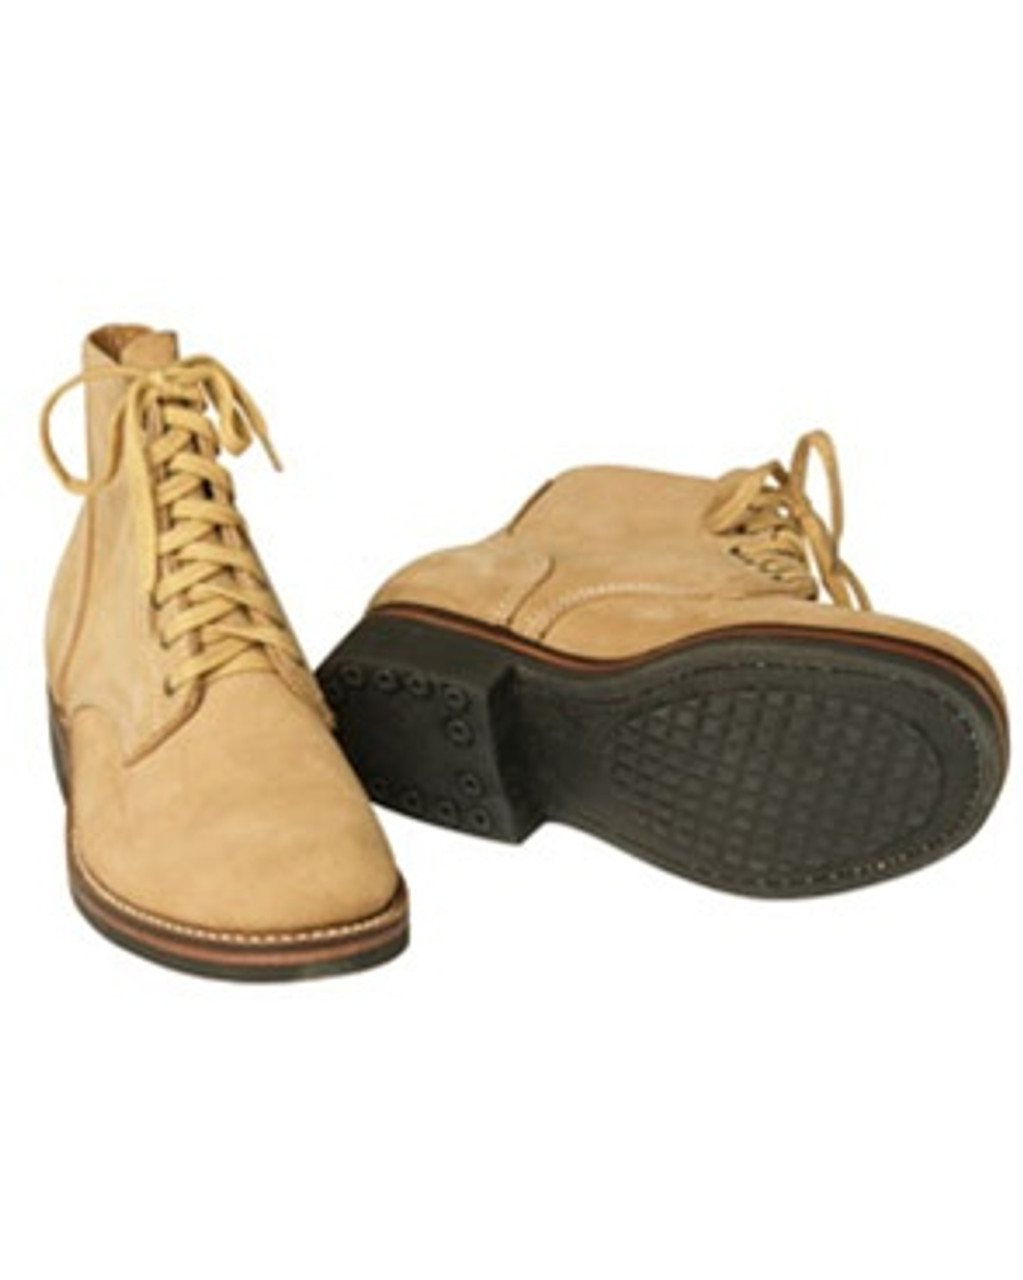 Roughout Service Shoes from Hessen Antique